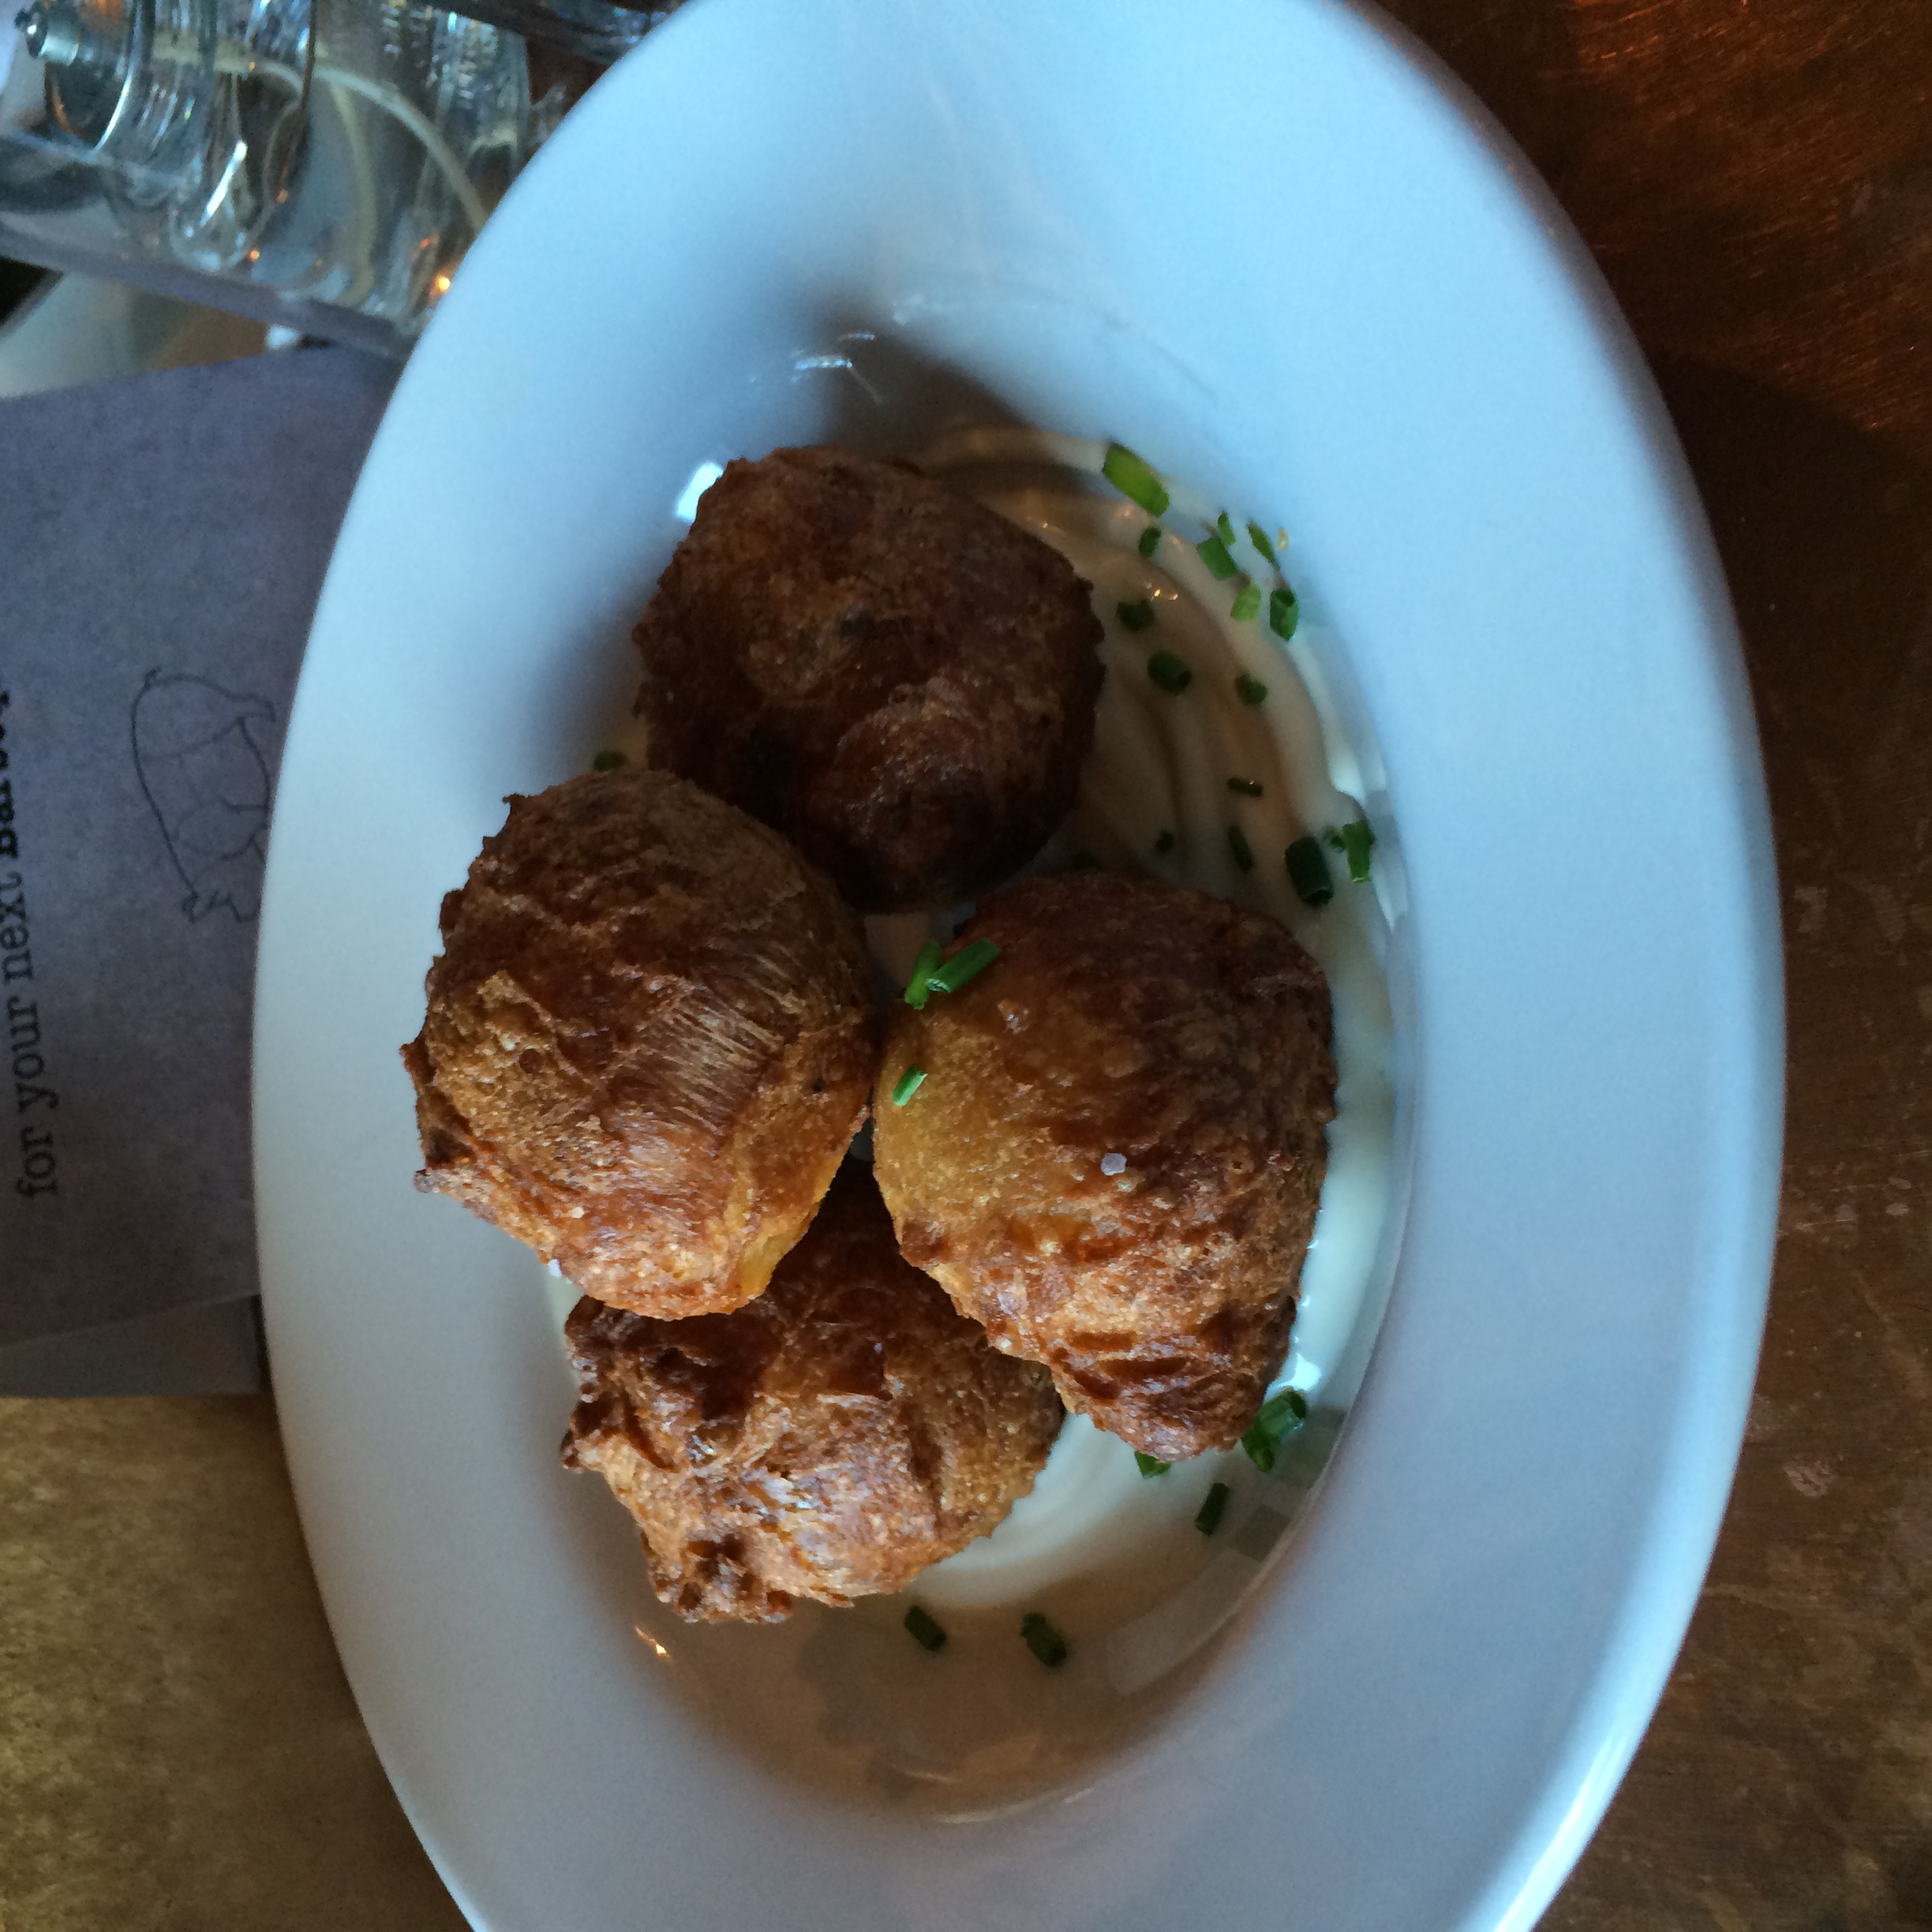 The House bacon beignets with maple chive crème fraiche were light and airy with tons of bacon flavor.